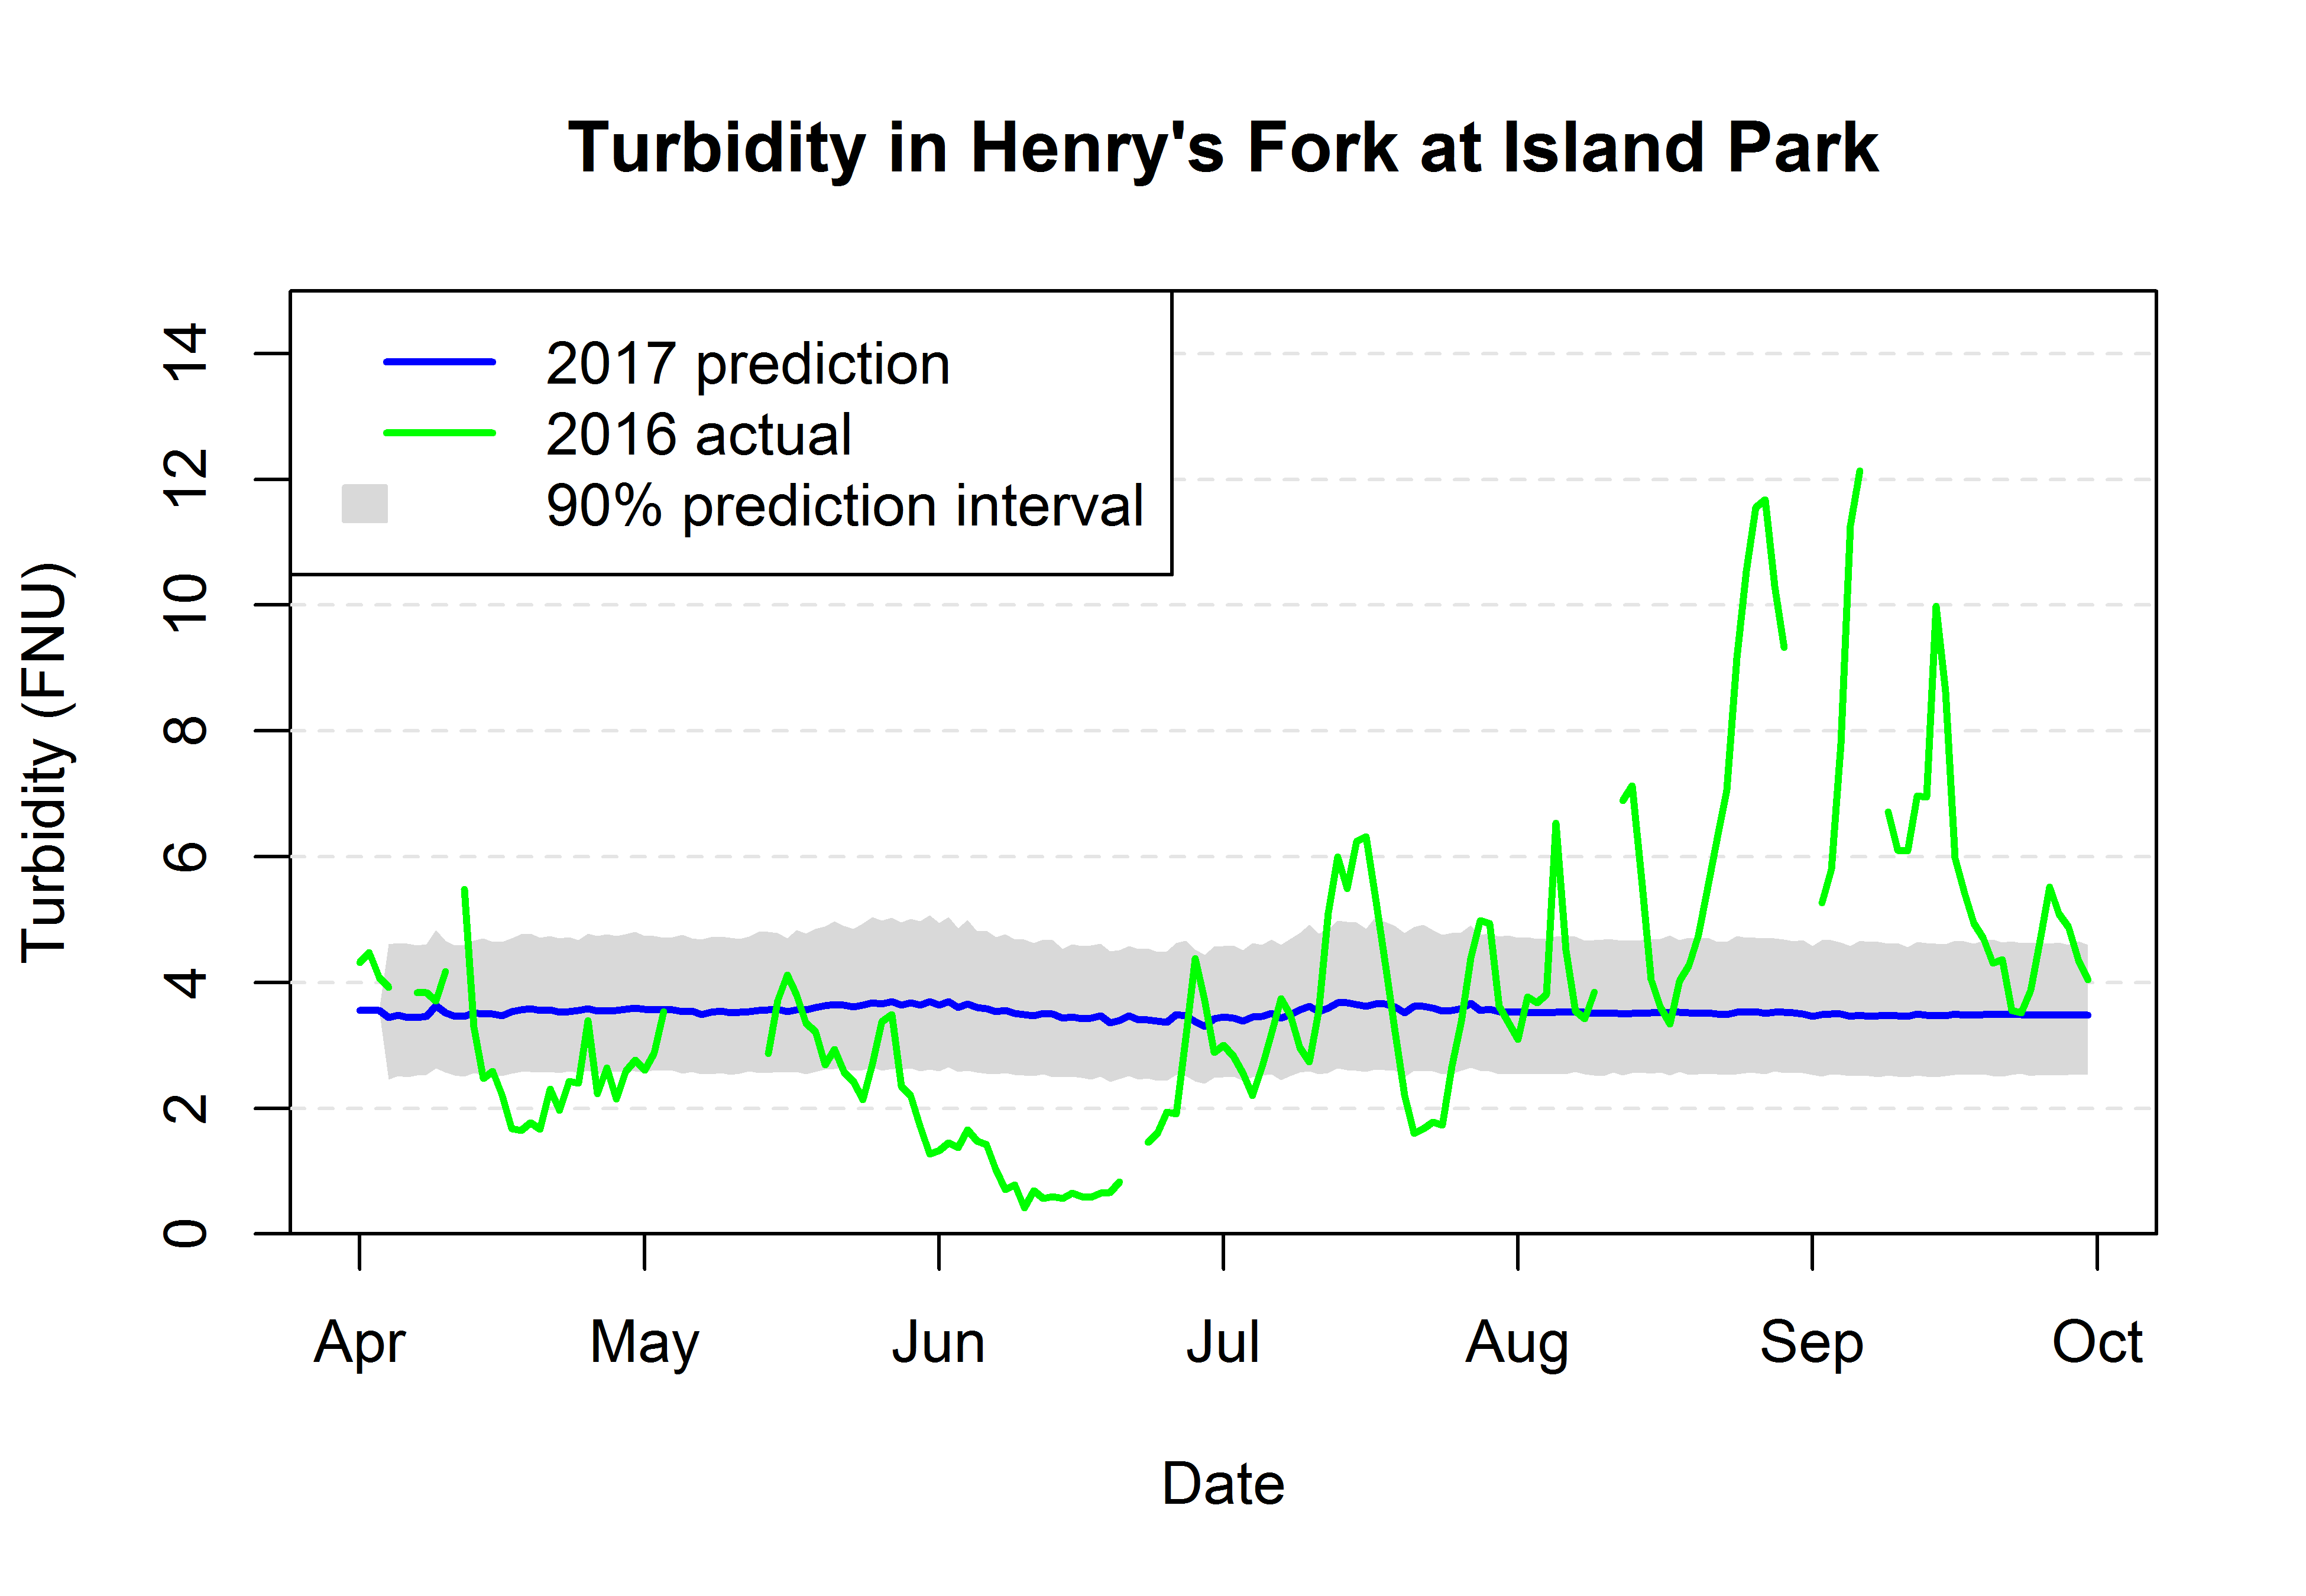 Graph of turbidity in Henry's Fork at Island Park.